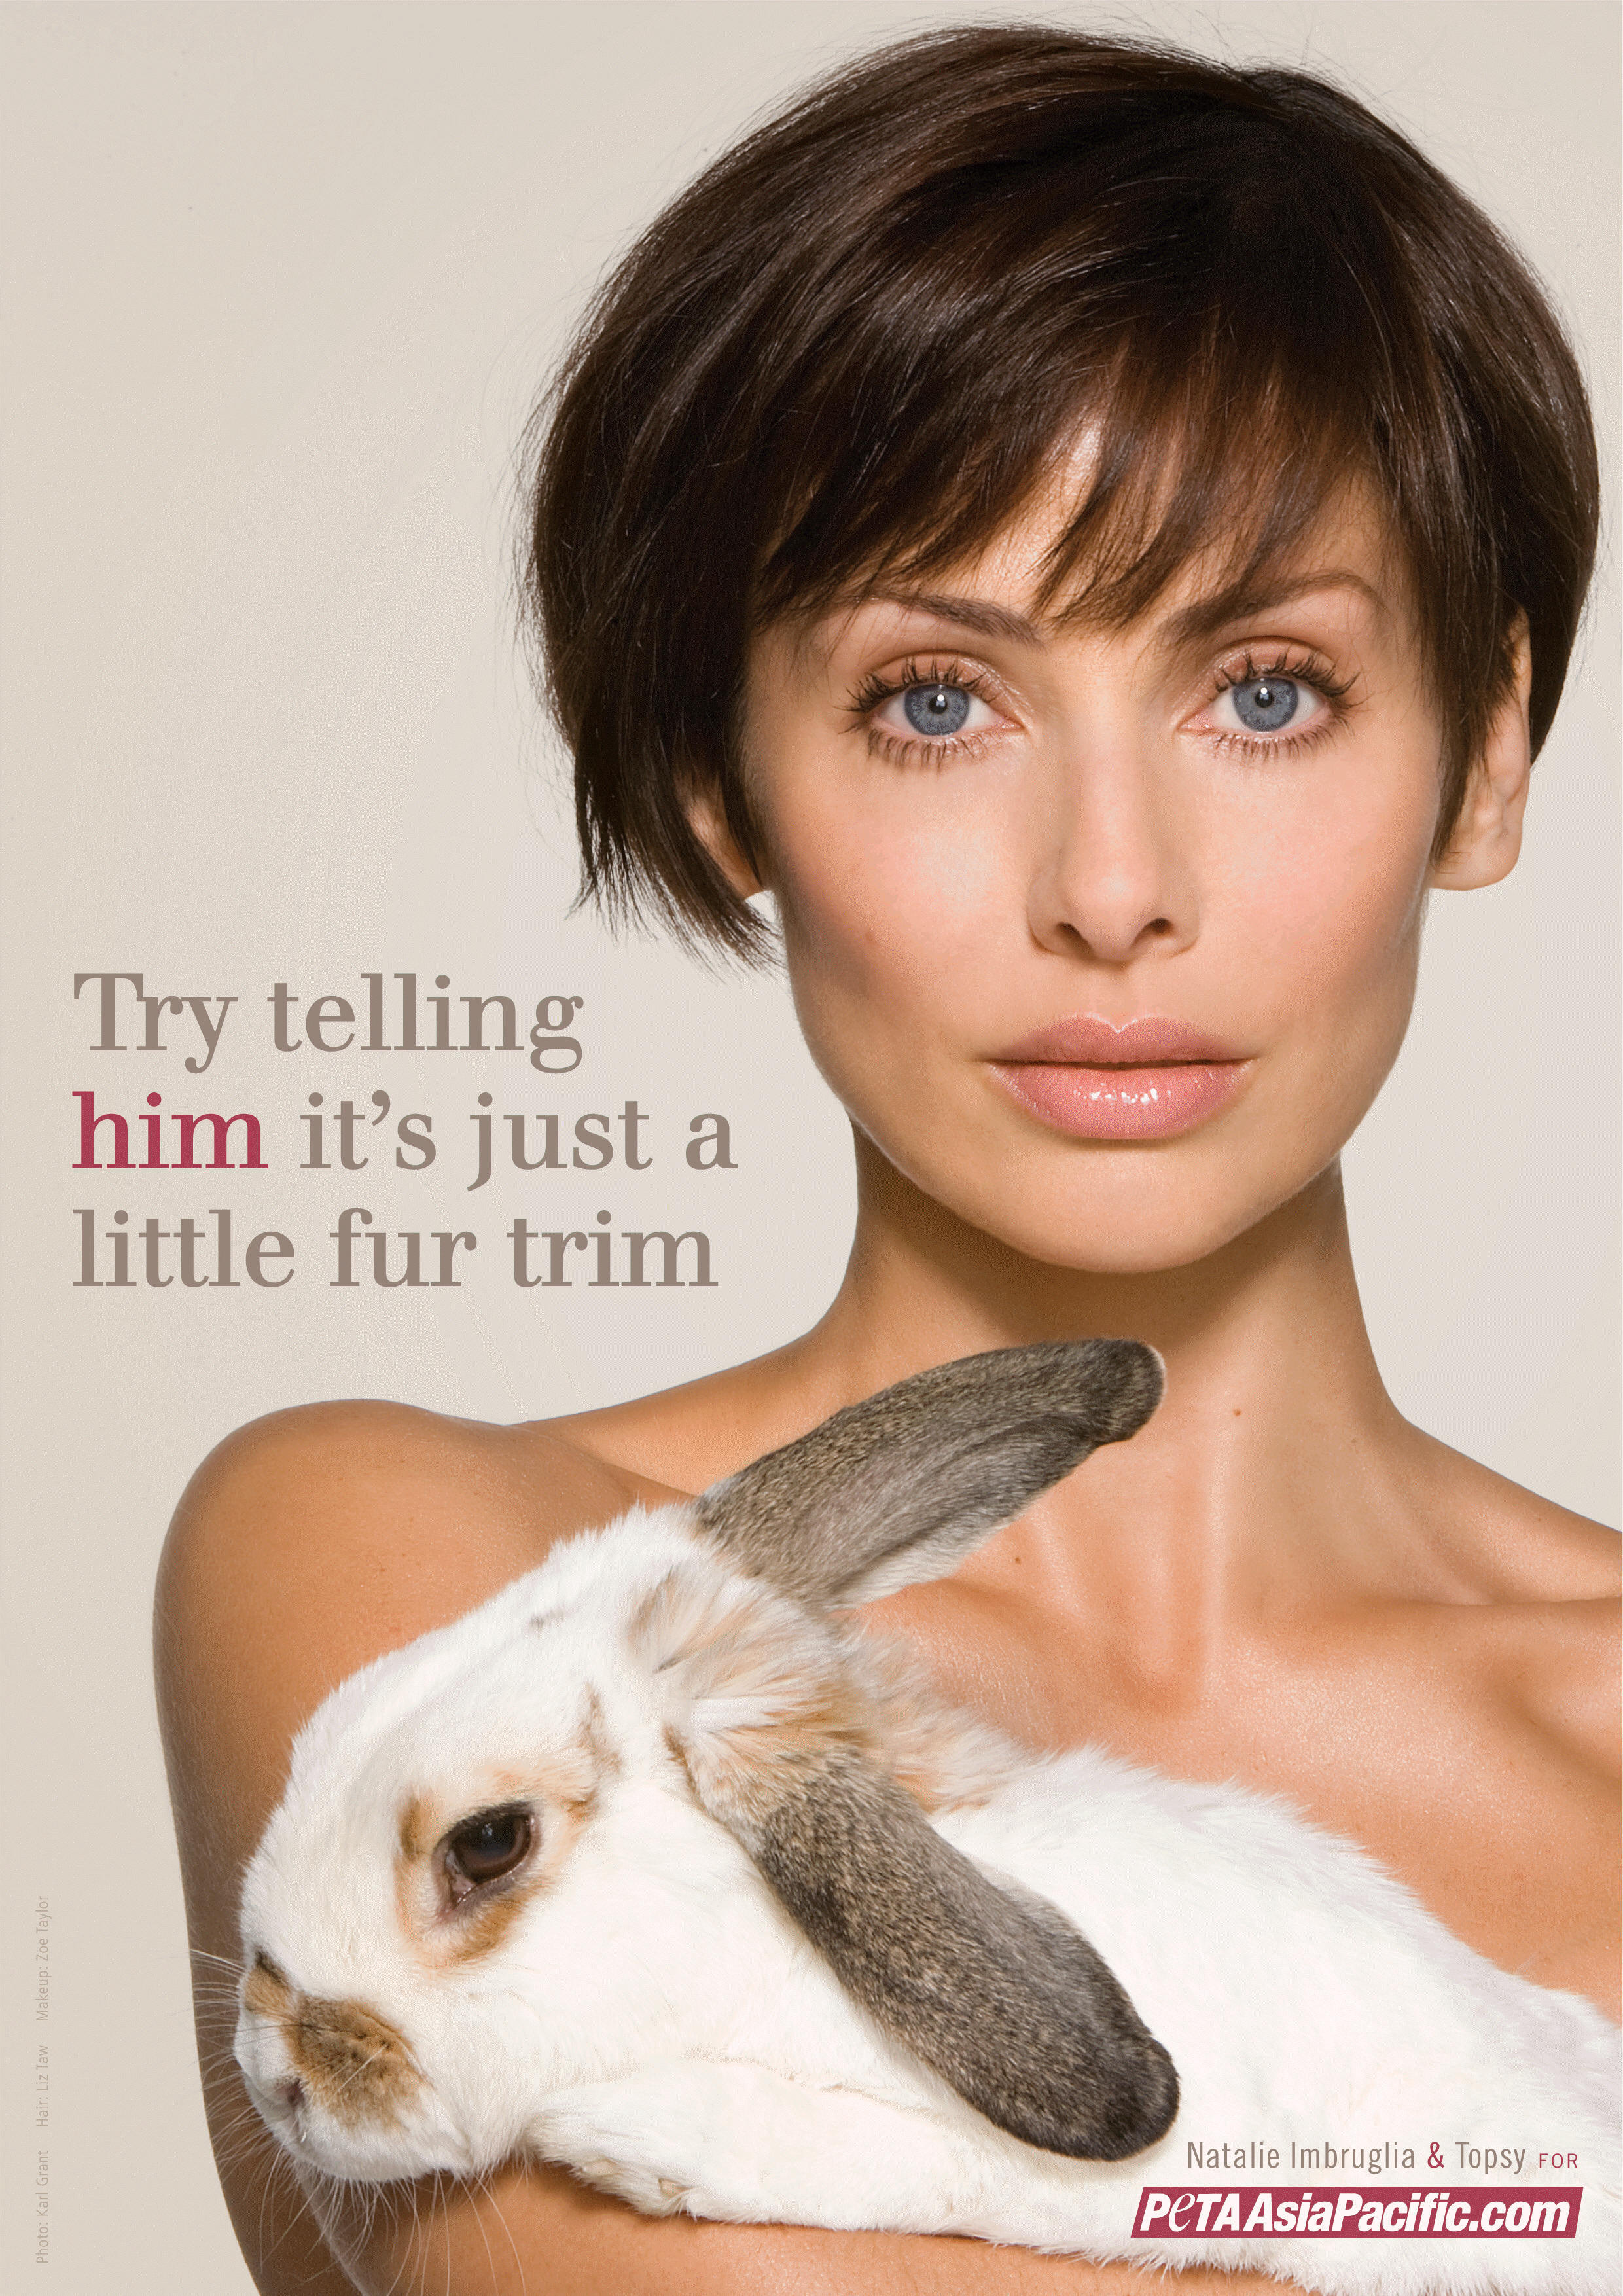 Natalie Imbruglia for PETA